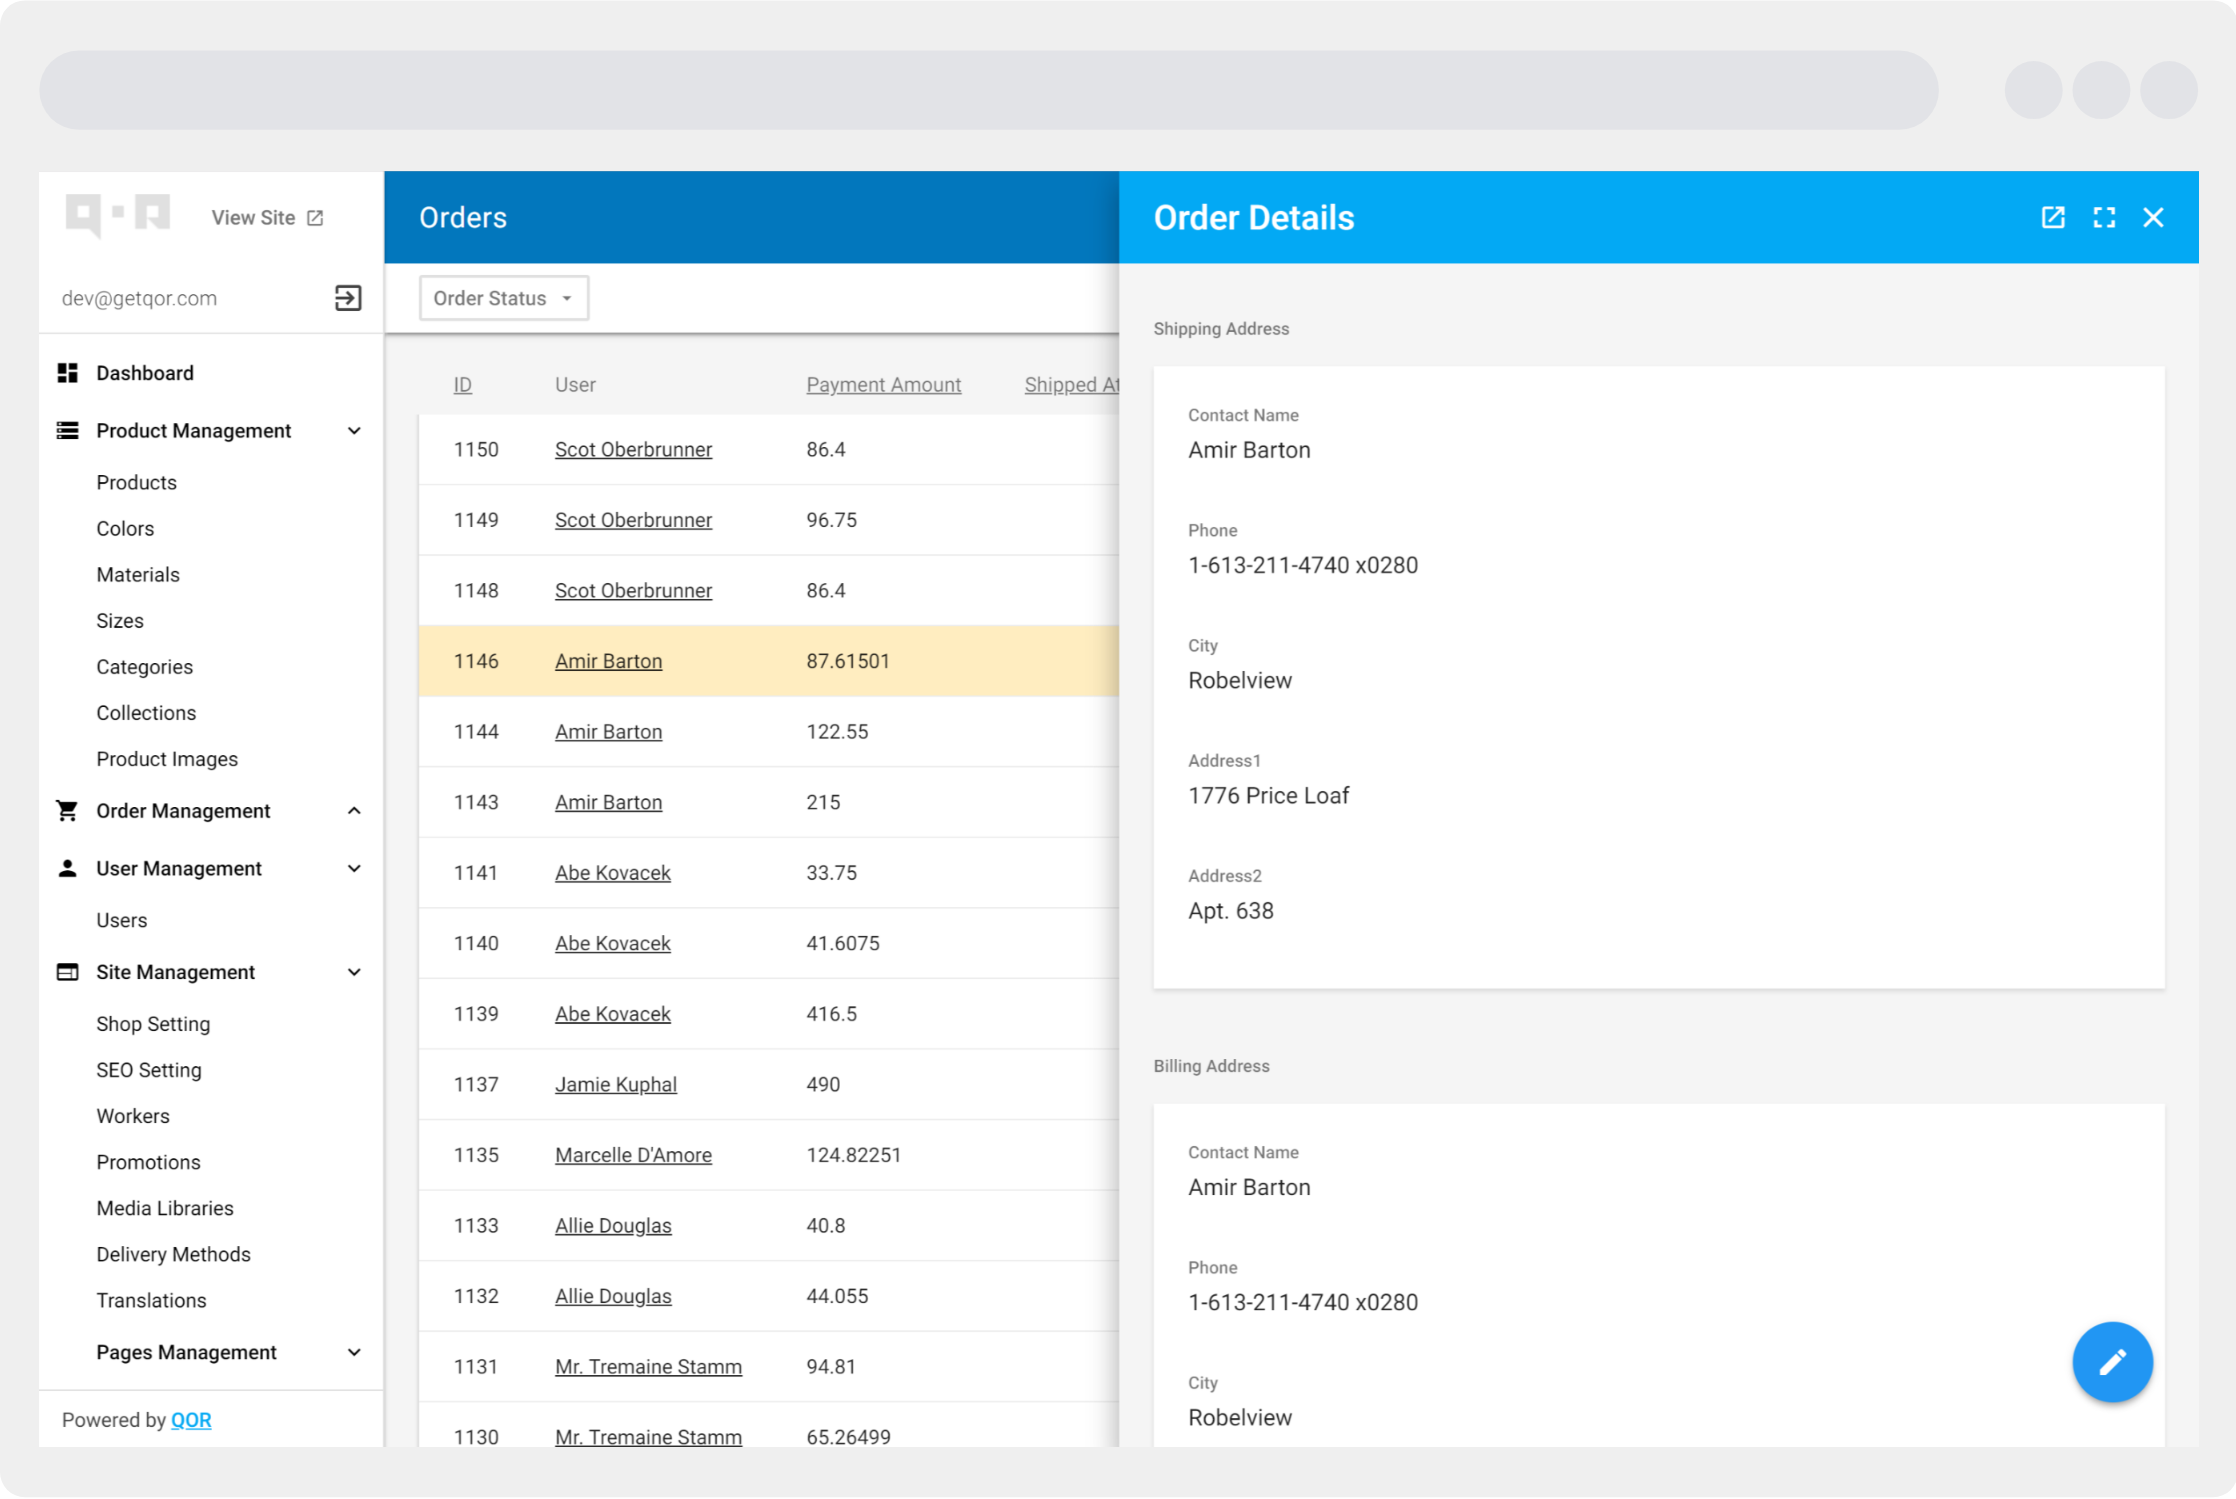 The QOR Admin Interface using Material Design